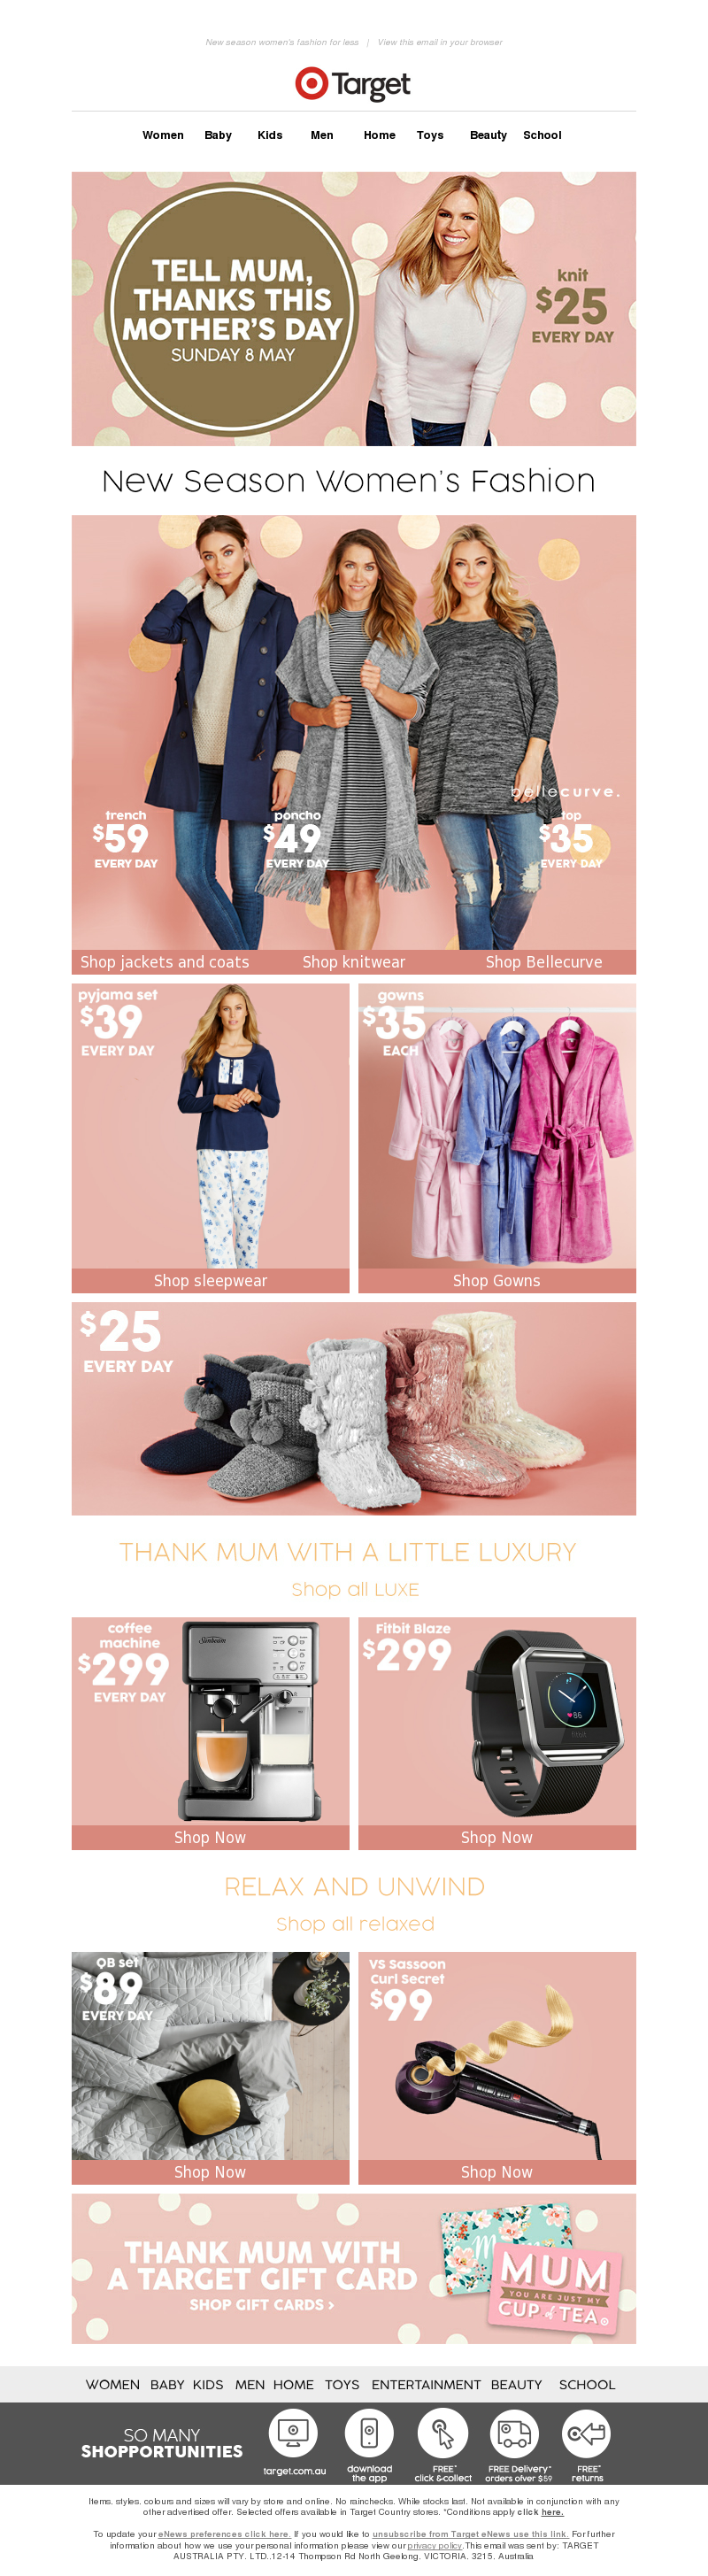 Target (AU) - Tell Mum, thanks this Mother's Day